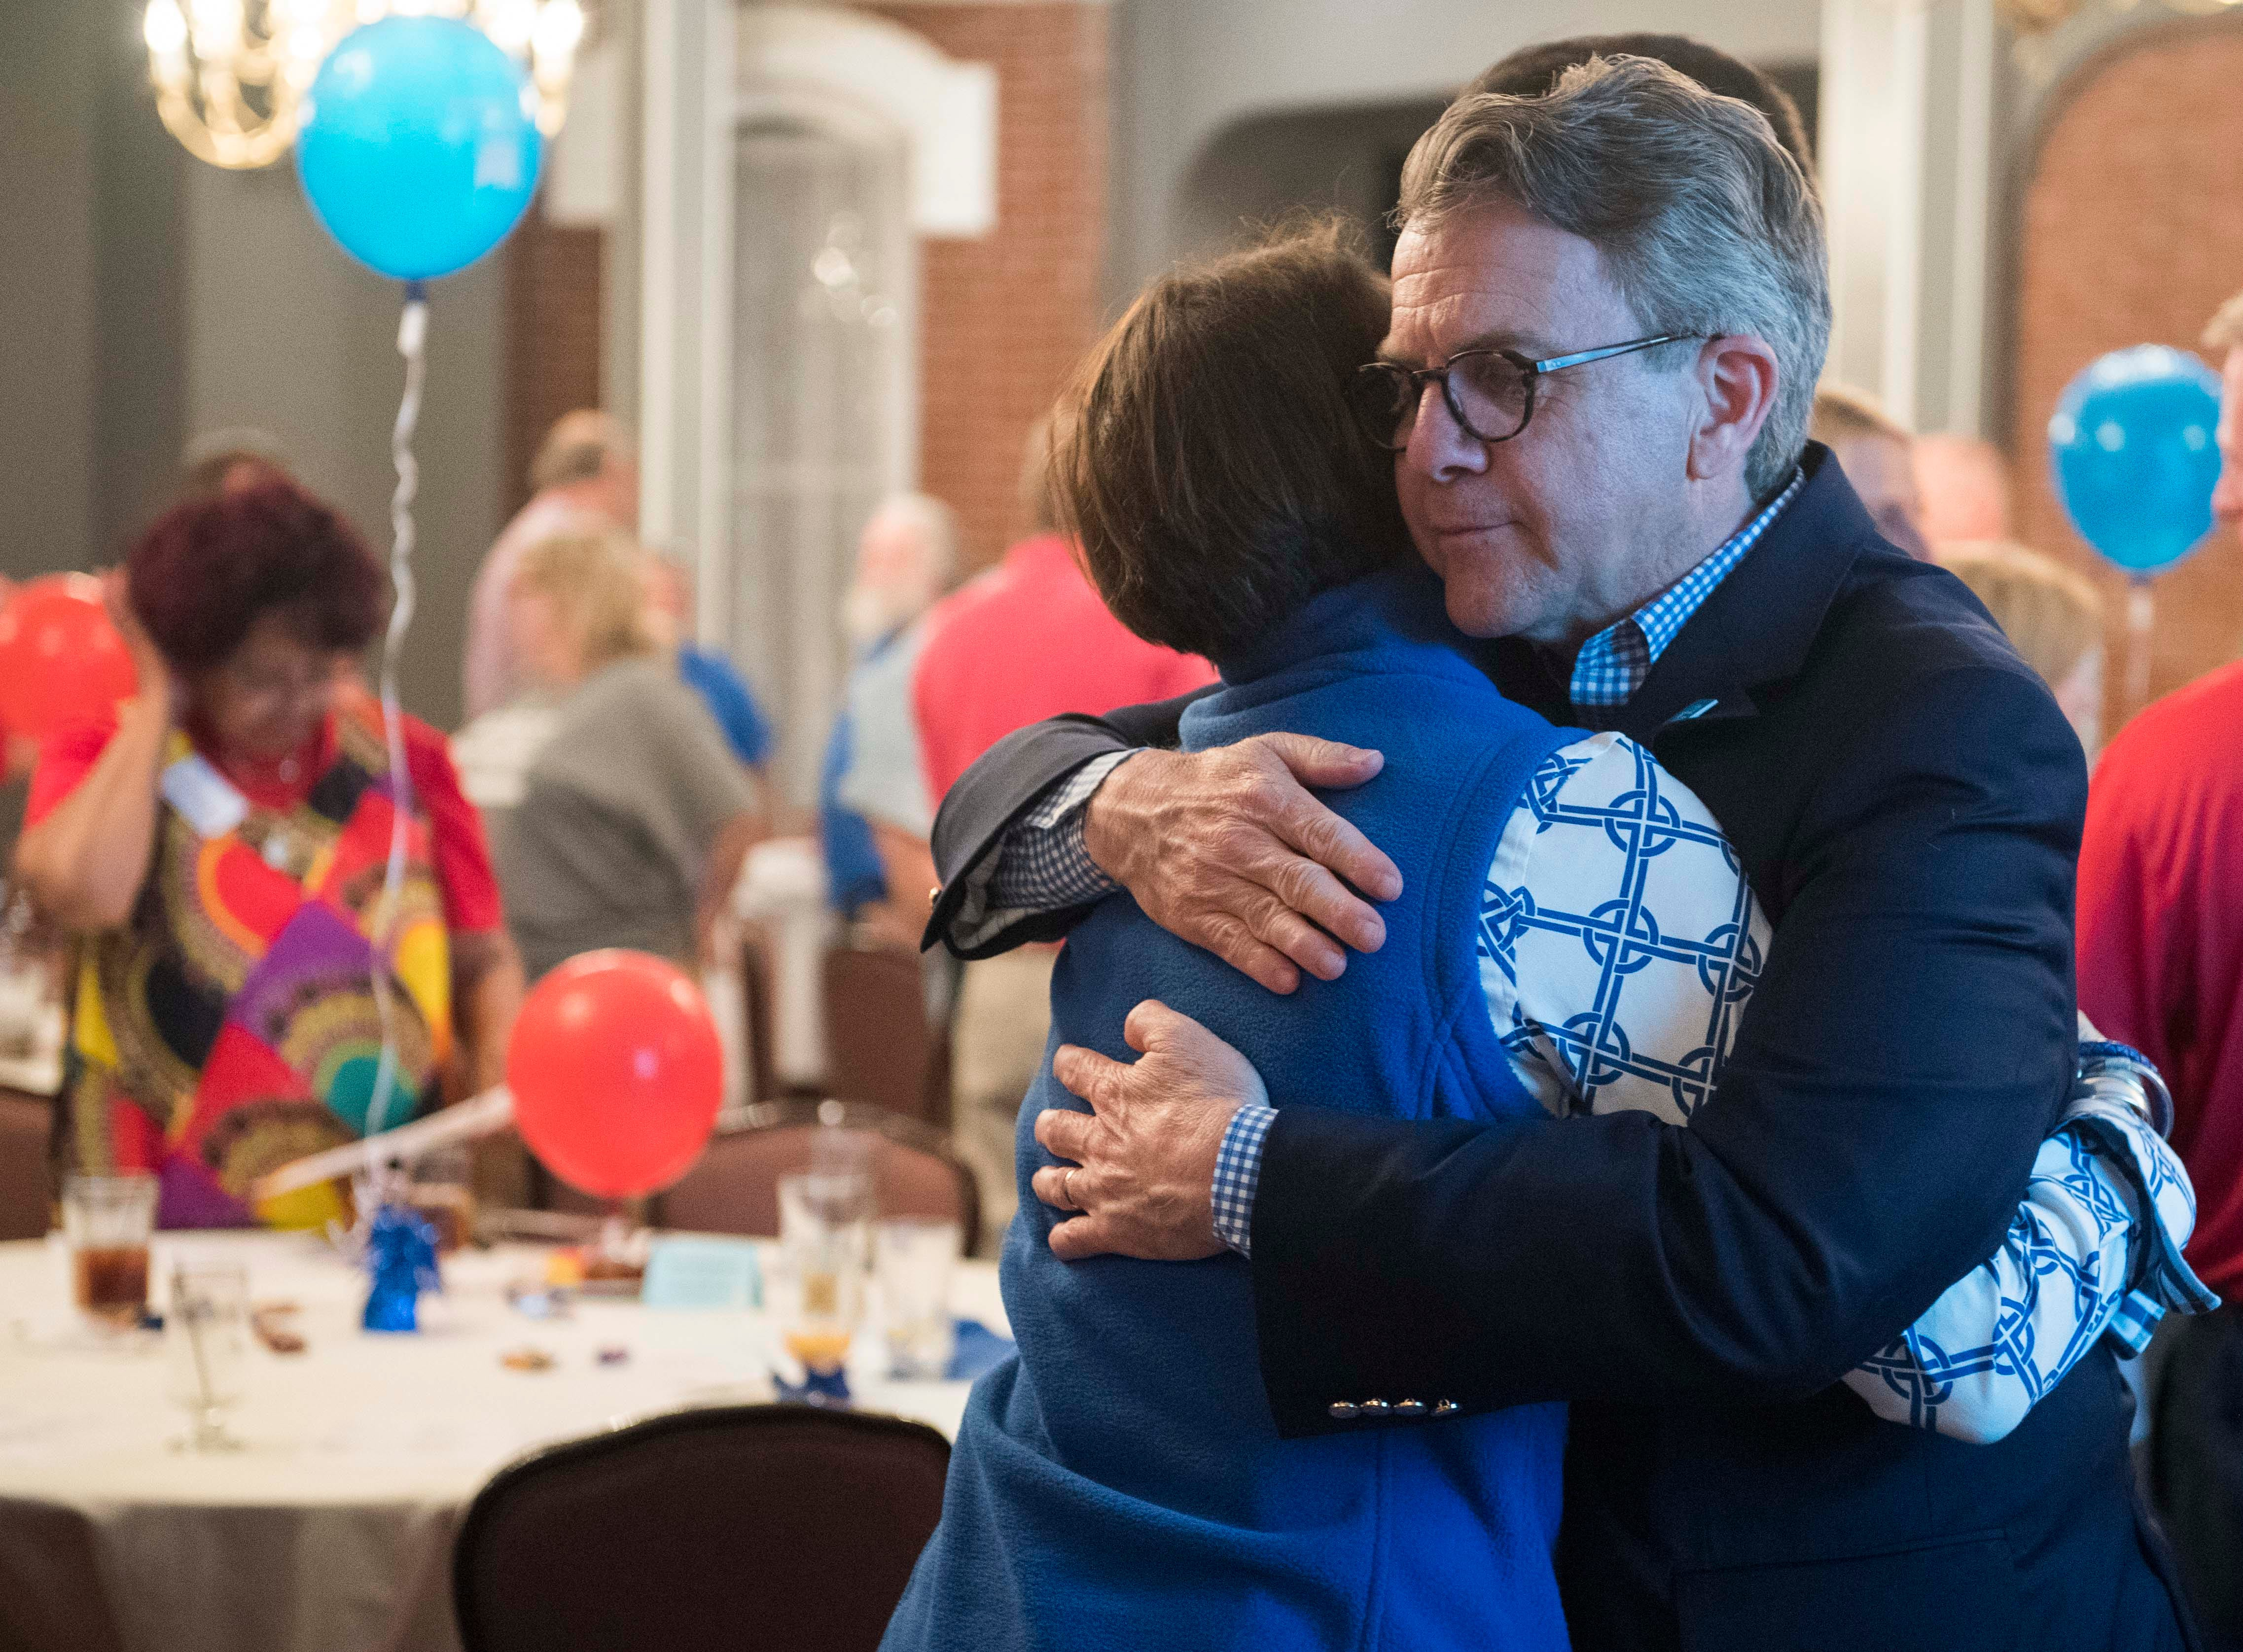 Evansville Mayor Lloyd Winnecke (R) hugs his wife Carol McClintock after Winnecke wins the primary election for mayor Tuesday, May 7, 2019.